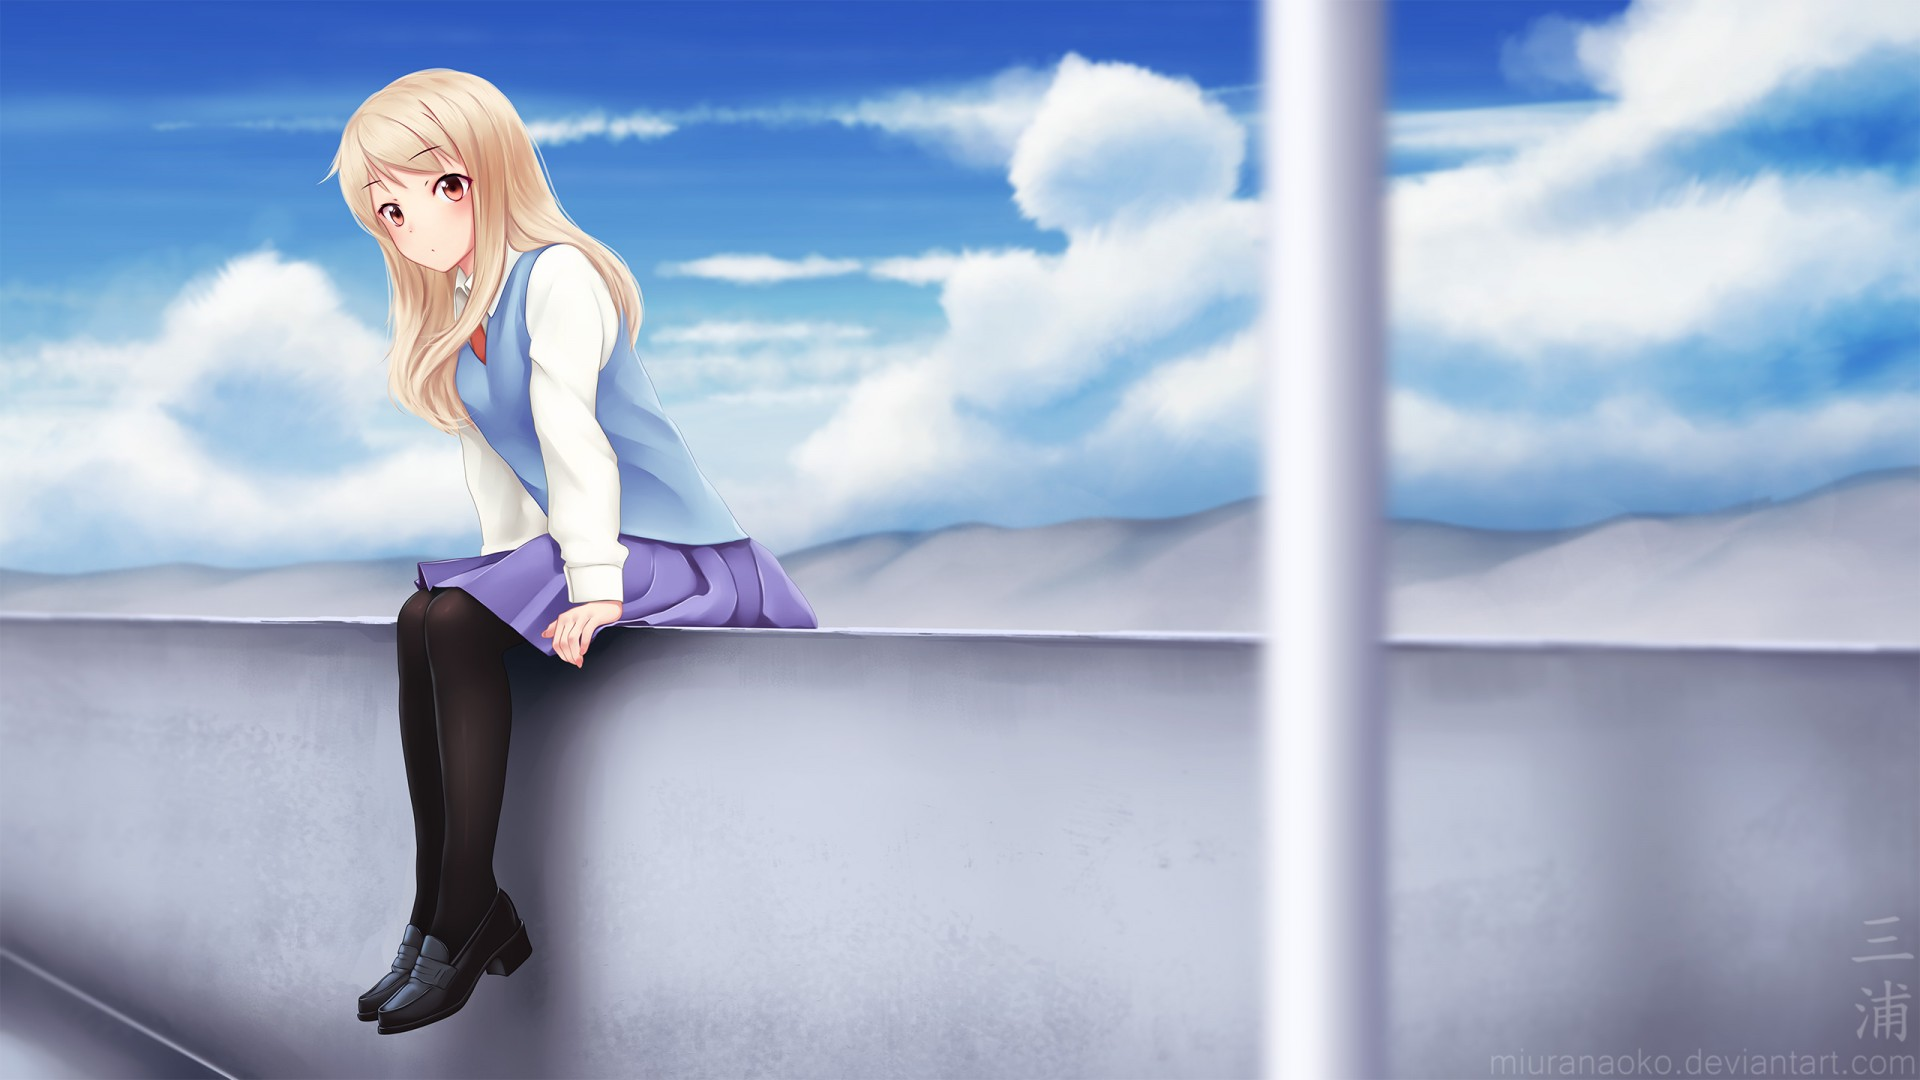 Full Hd Girl Pc Wallpaper Mashiro Shiina Anime Wallpapers Hd Wallpapers Id 17853